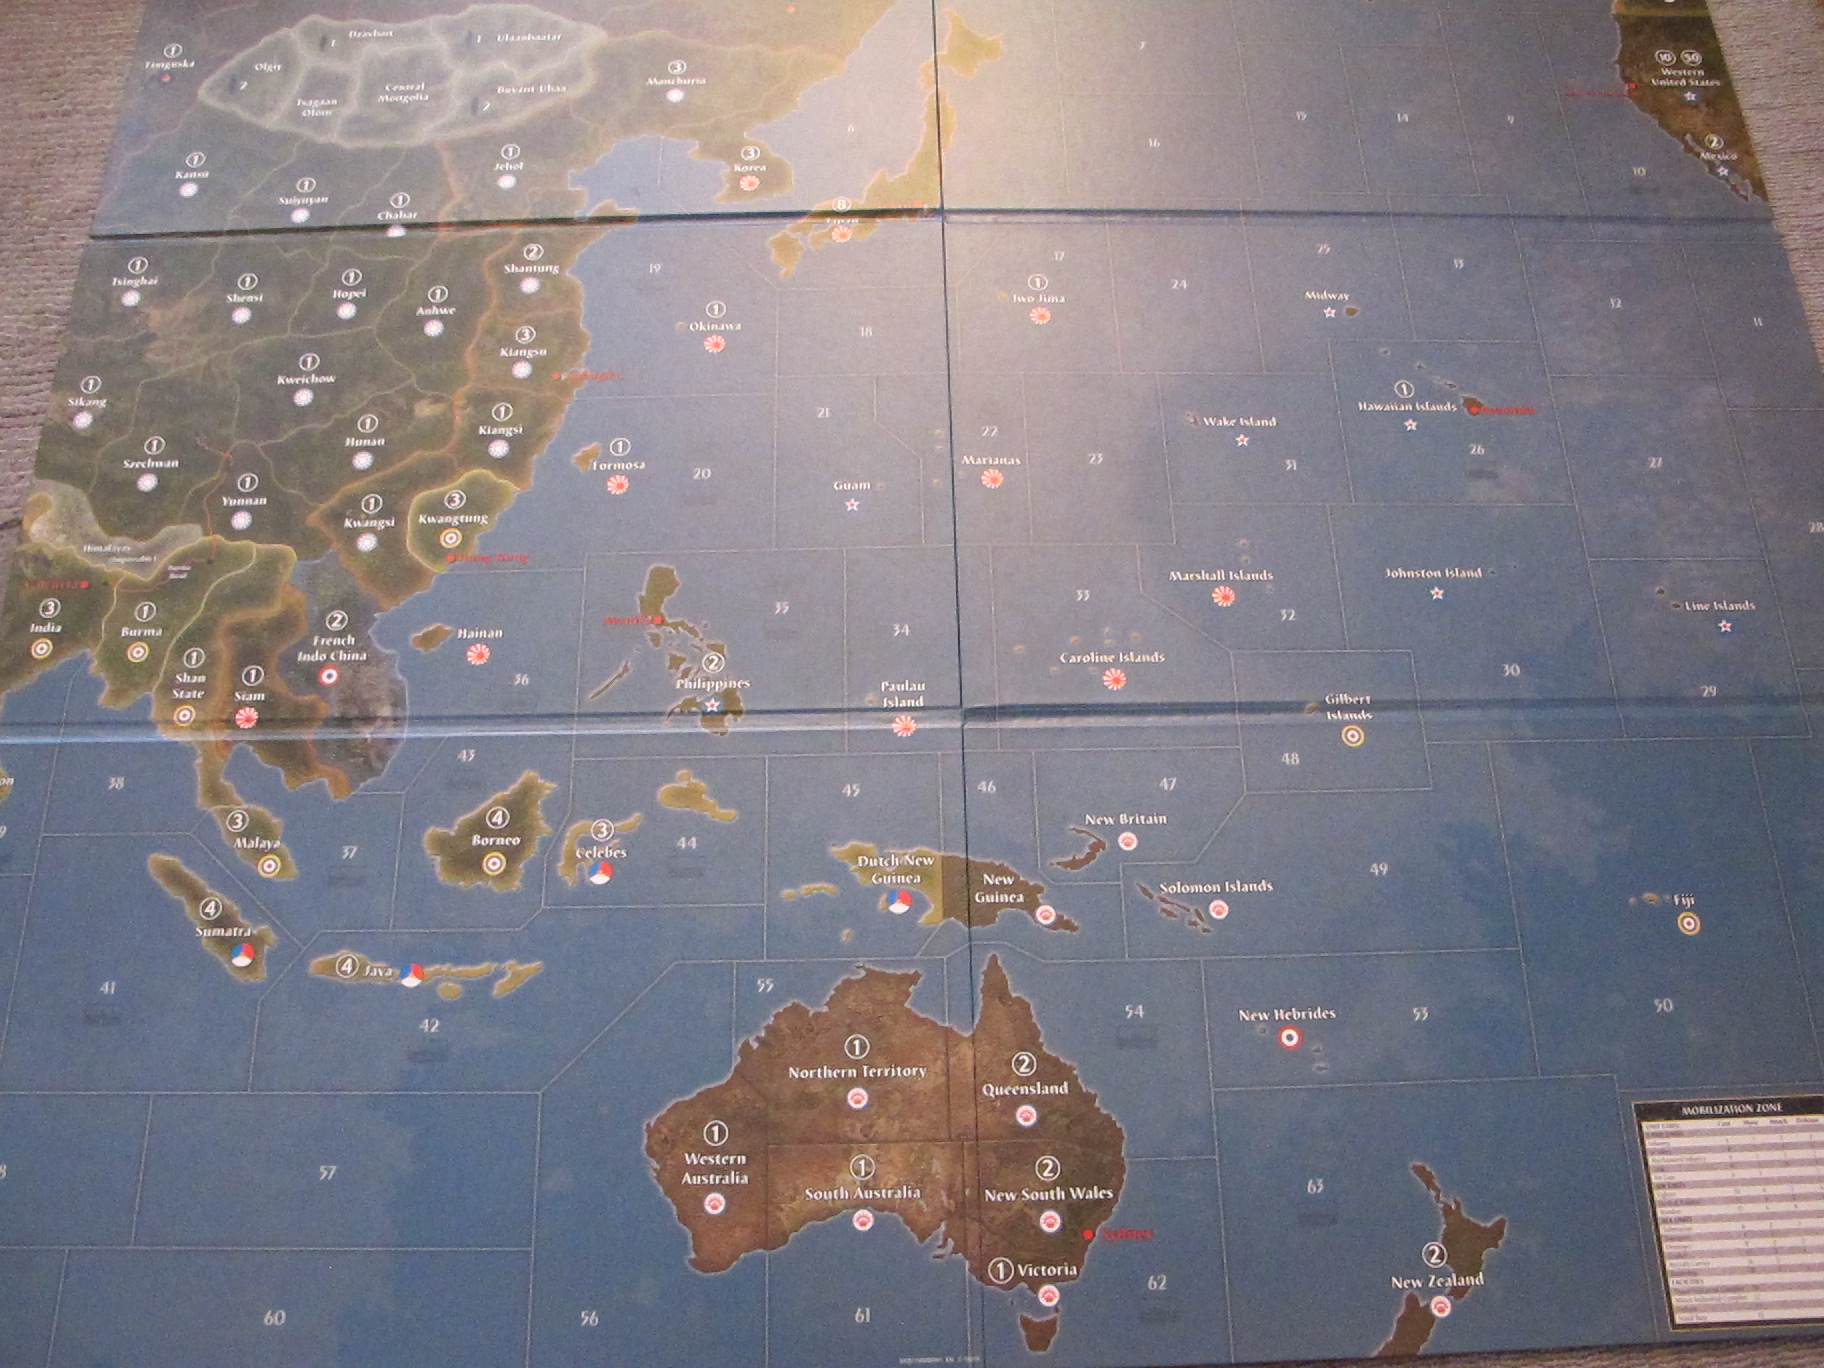 axis and allies pacific map Axis Allies Pacific 1940 Wikipedia axis and allies pacific map